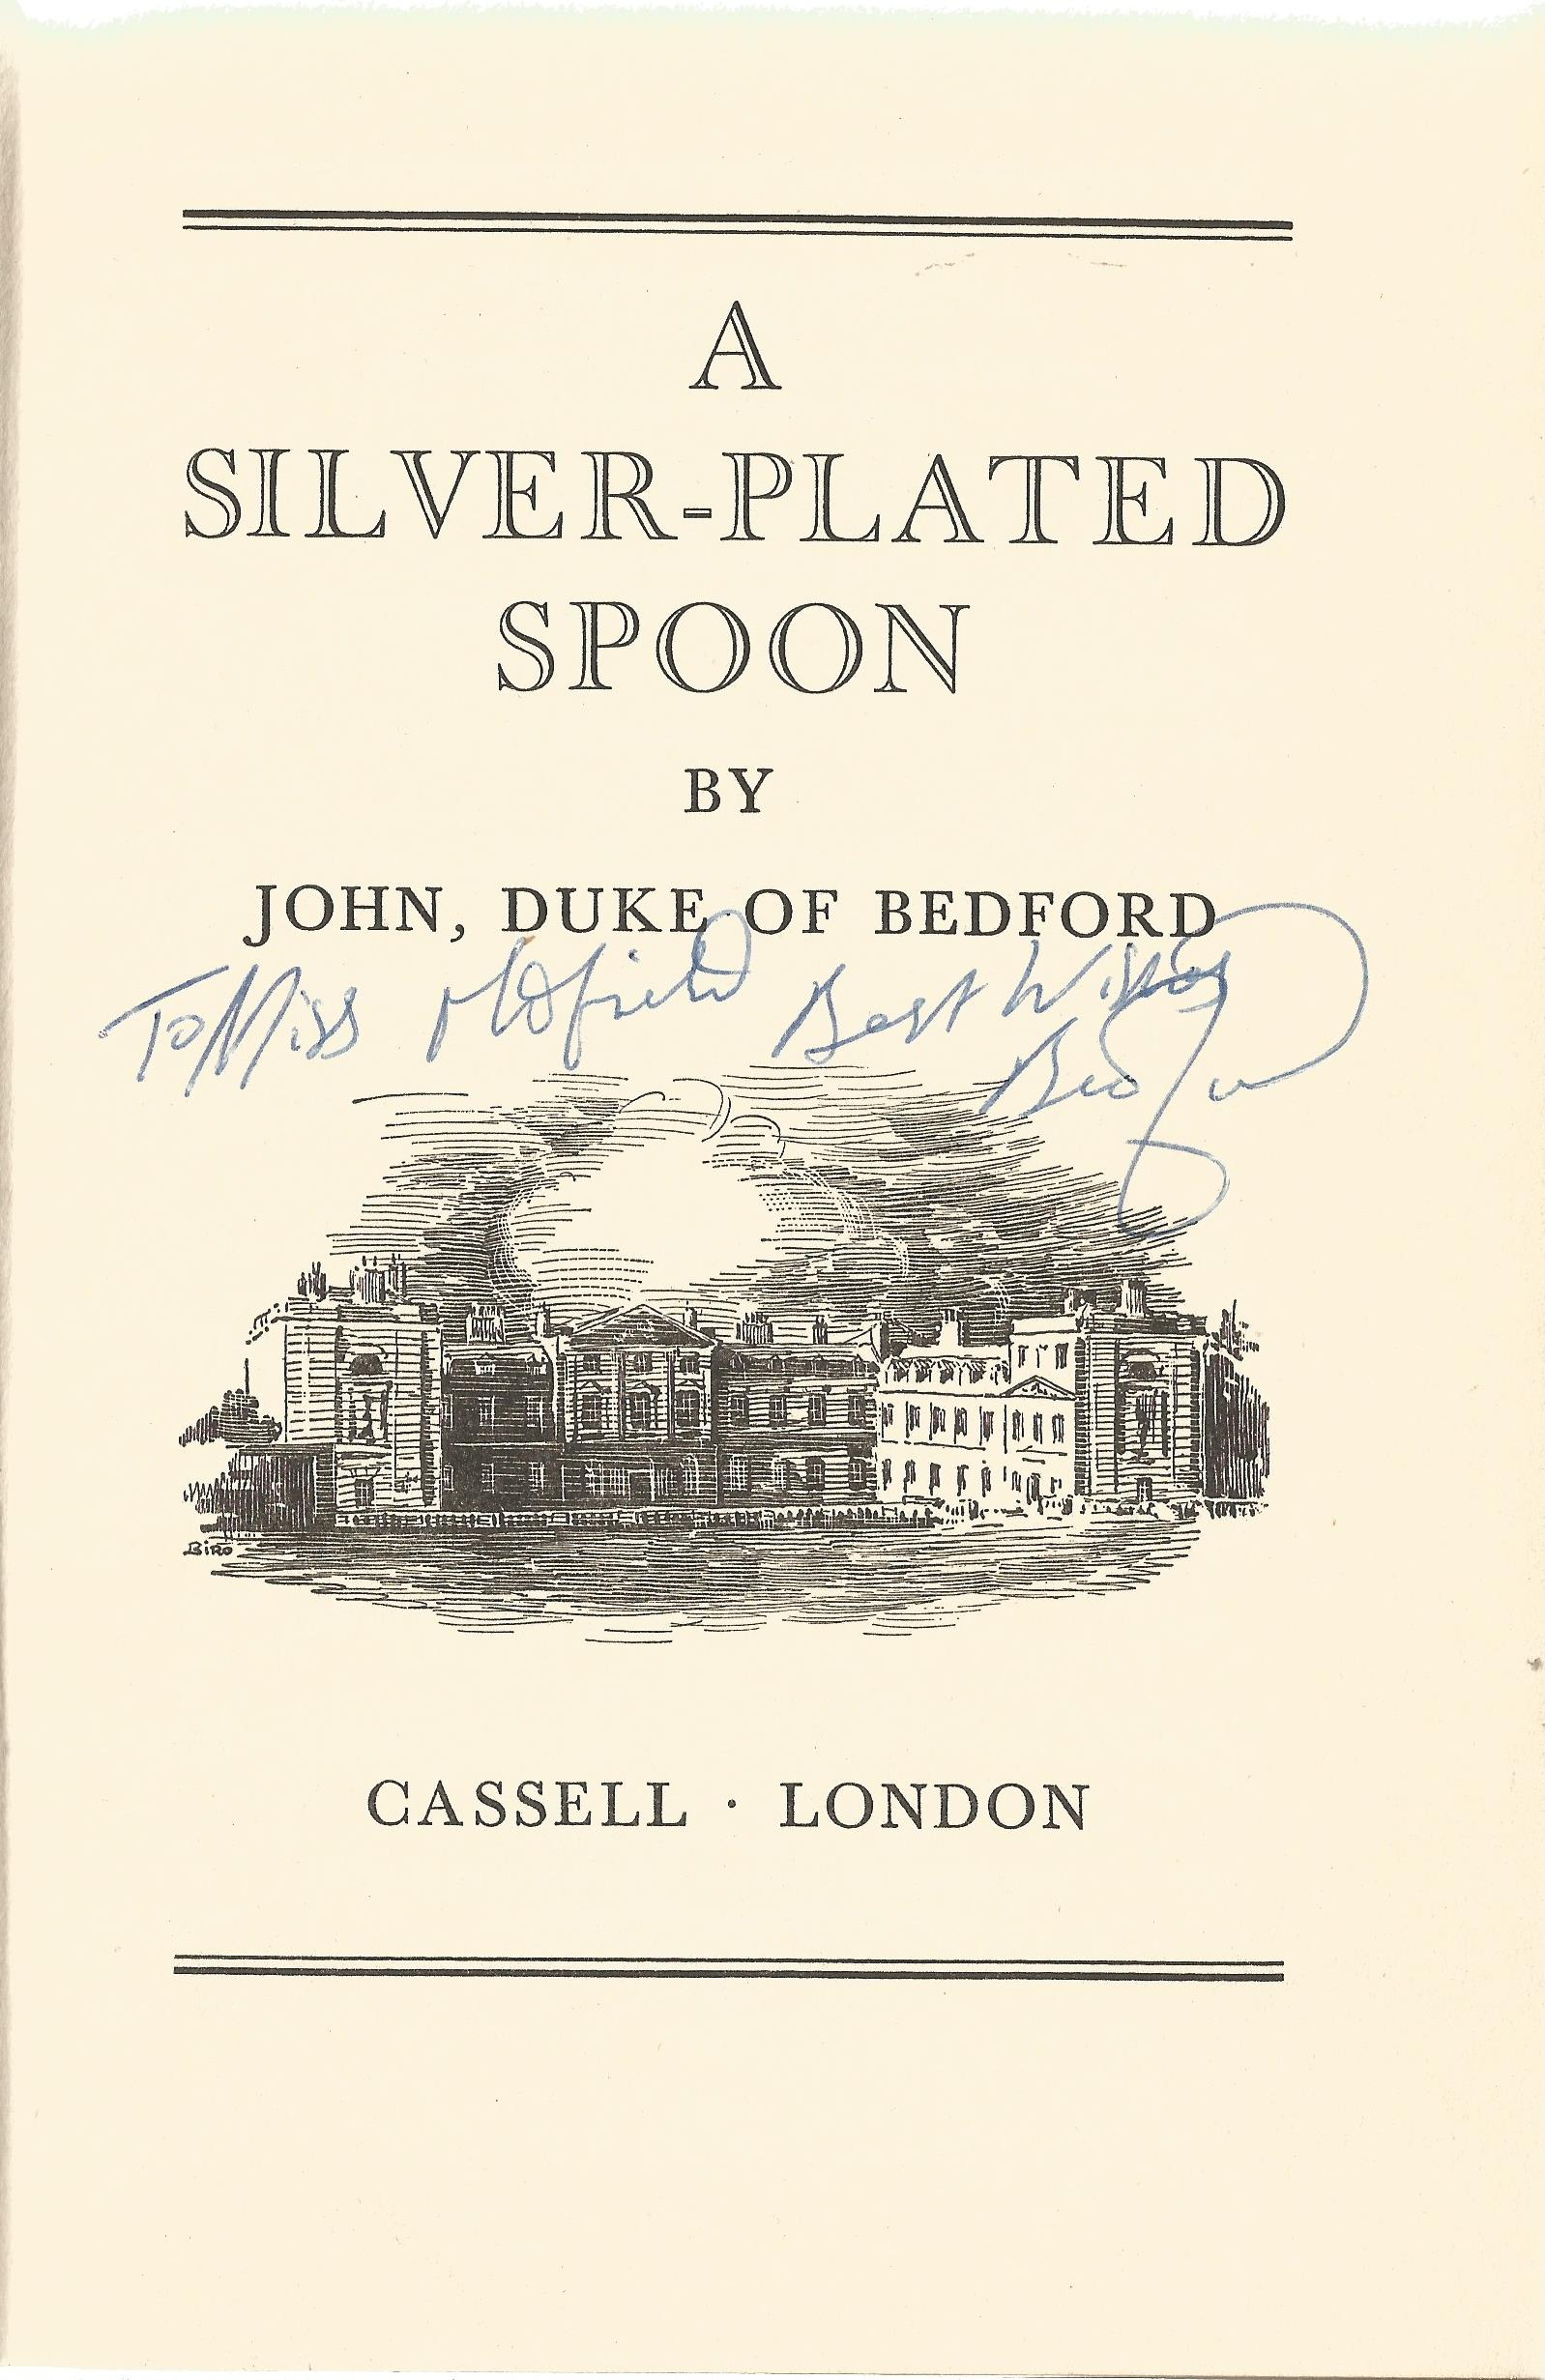 John, Duke of Bedford Hardback Book A Silver Plated Spoon 1959 signed by the Author on the Title - Image 2 of 2